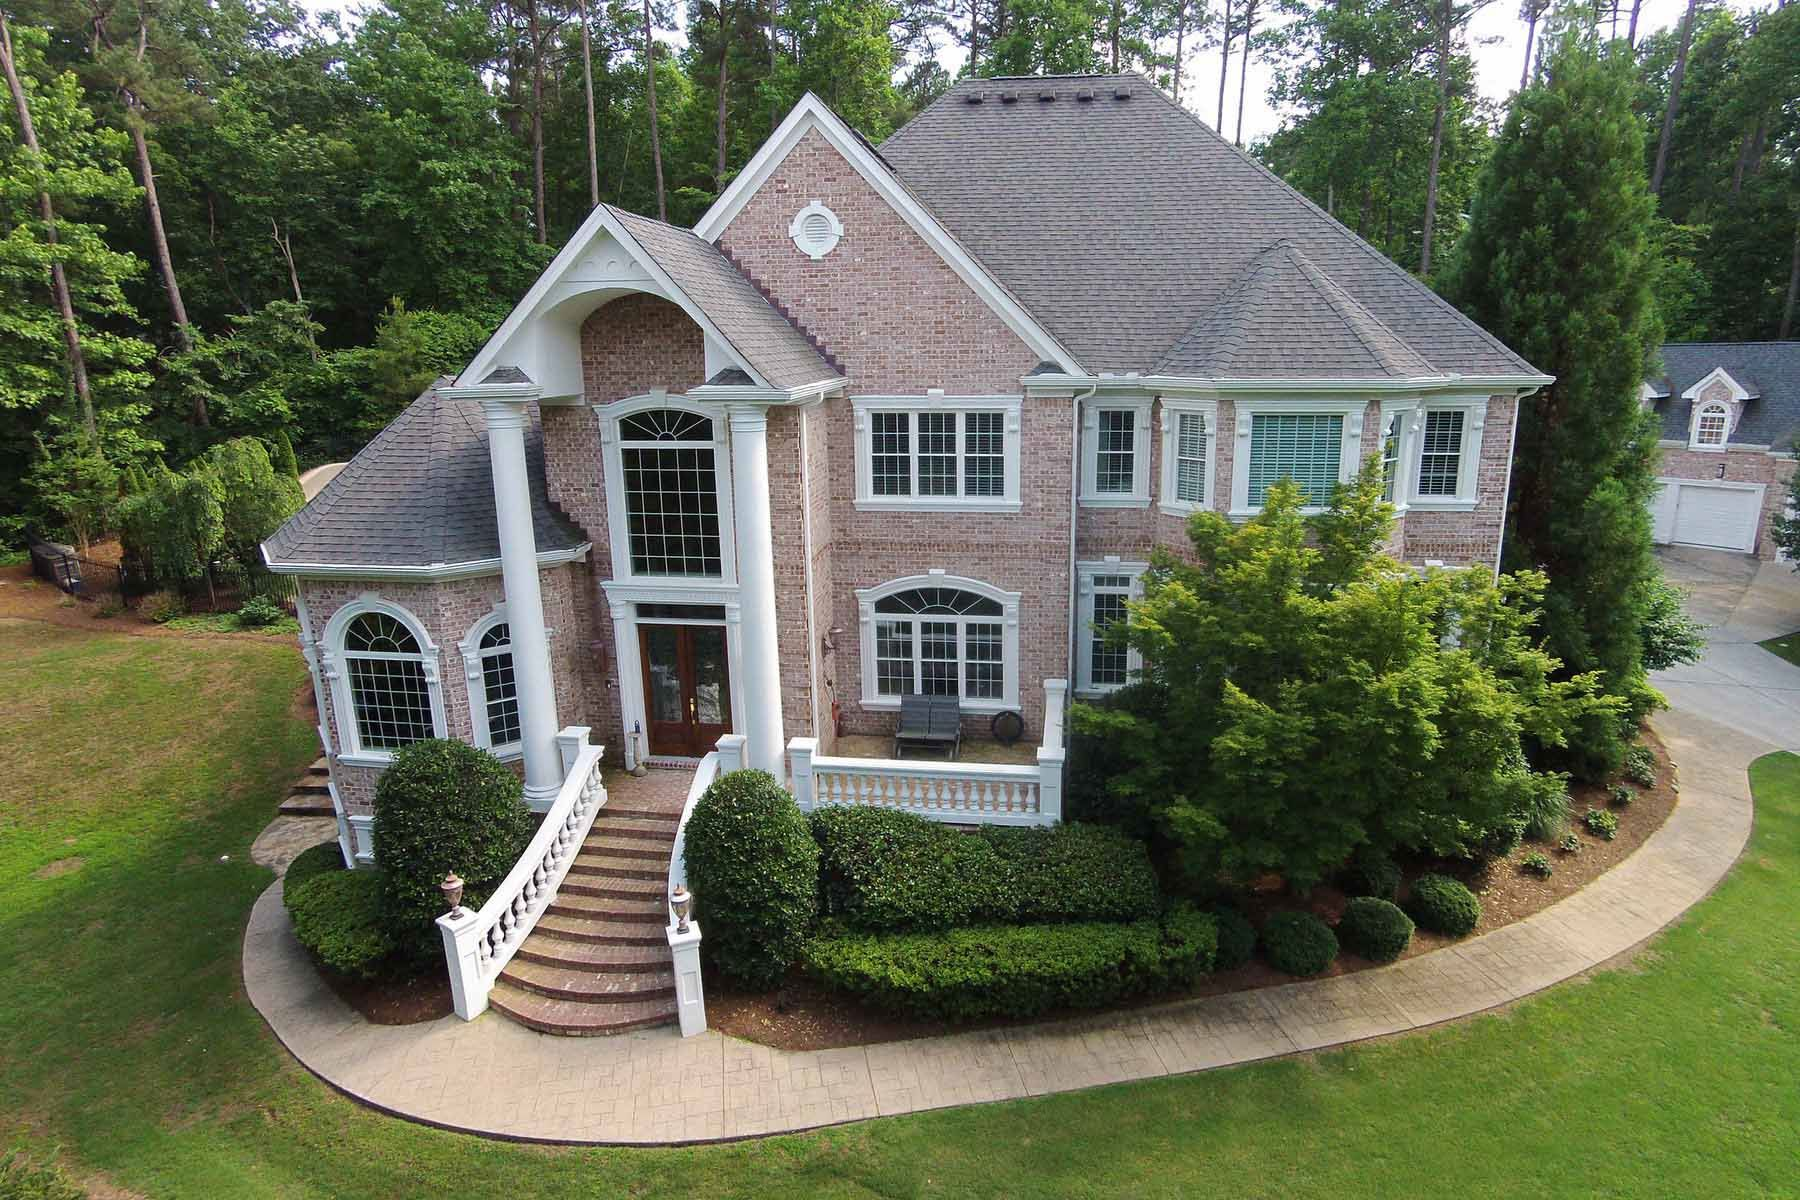 Single Family Home for Sale at Executive Retreat with Amazing Pool, Seven Car Garage 440 Fawn Glen Drive Roswell, Georgia, 30075 United States